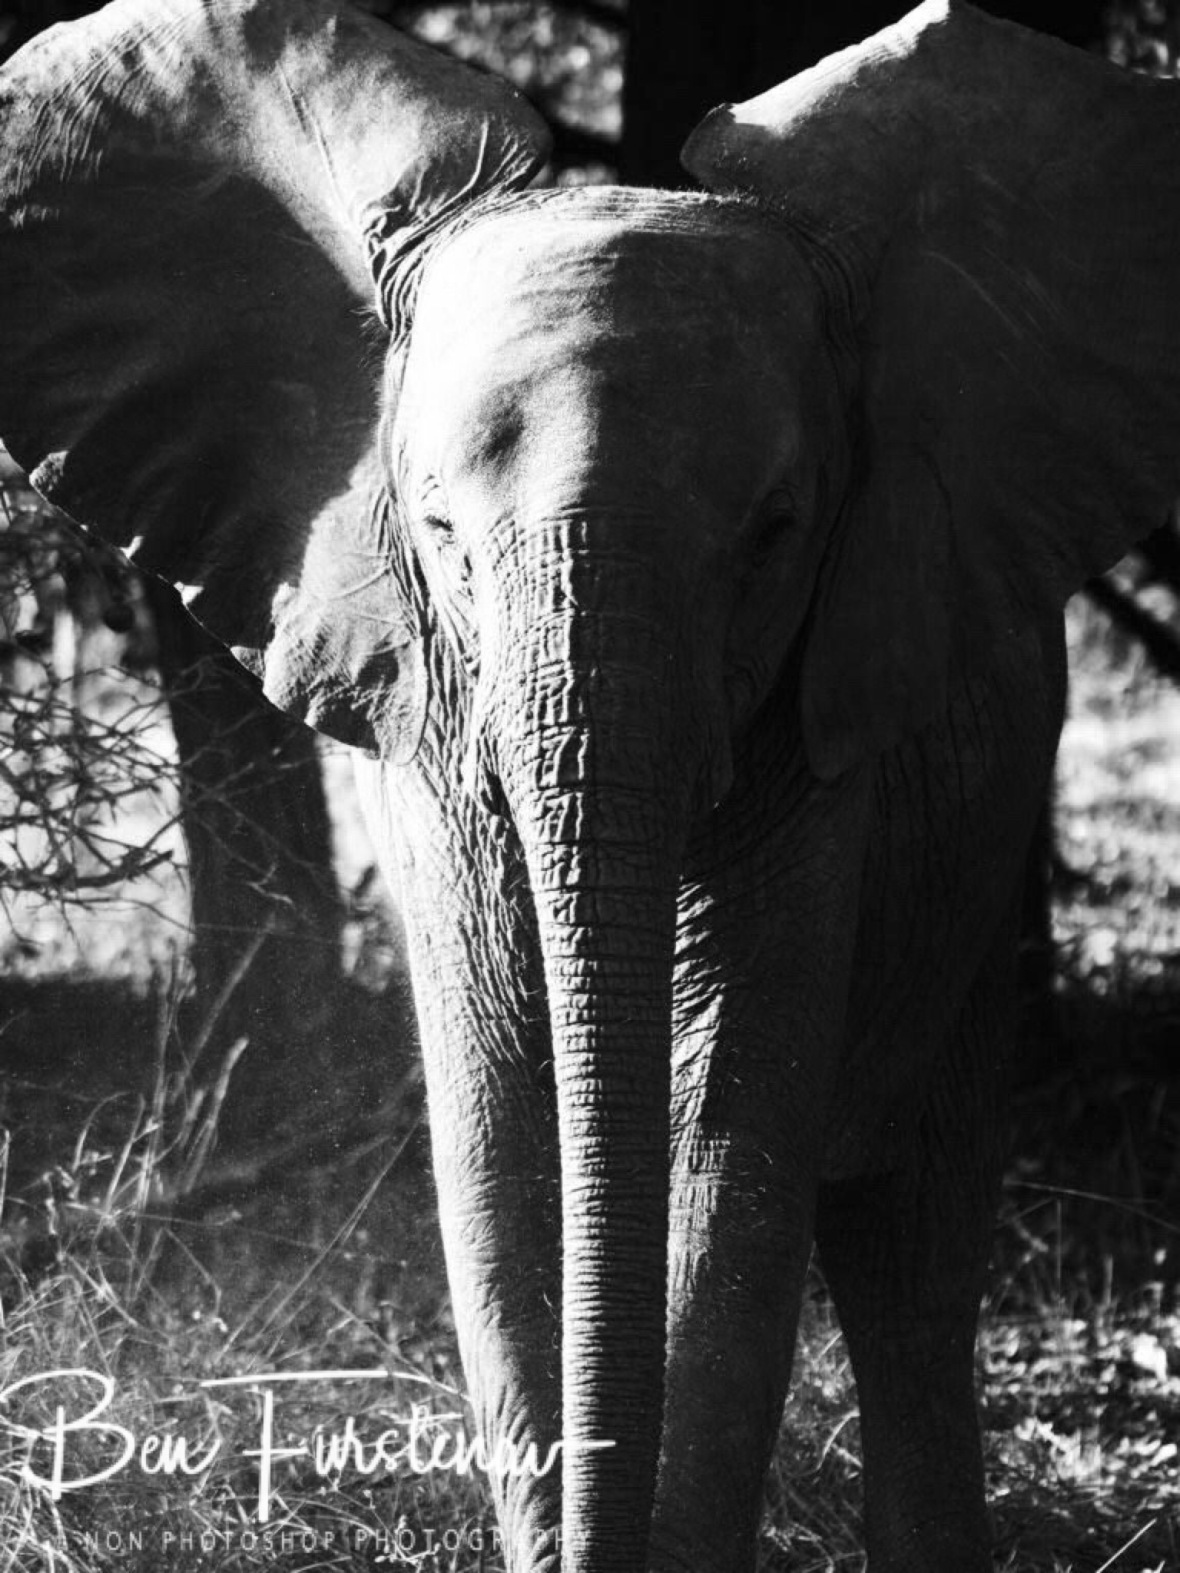 Imposing gestures by junior, South Luangwa National Park, Zambia